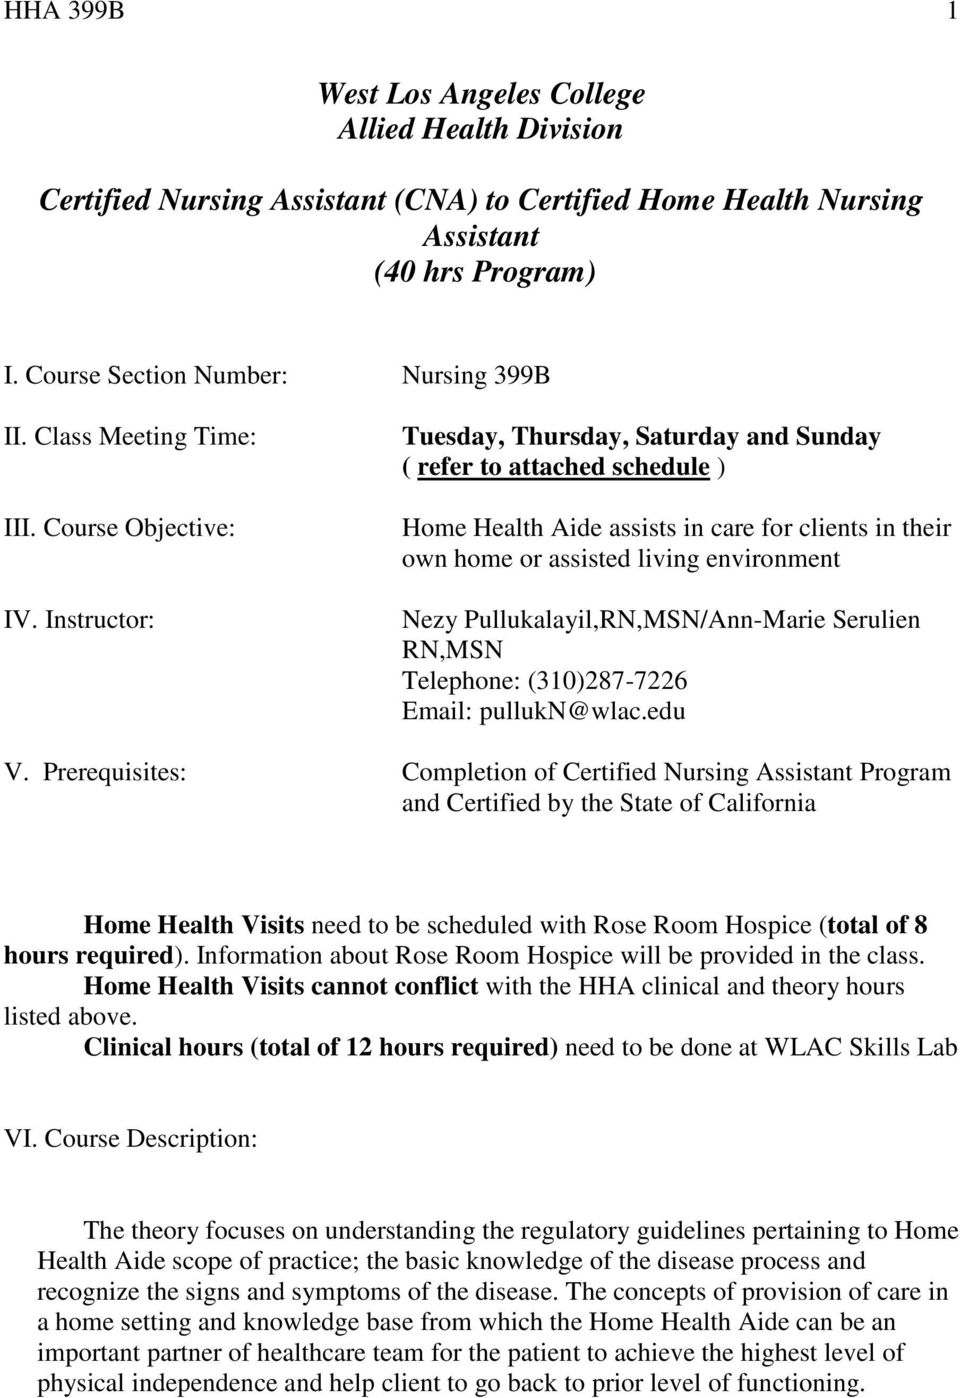 West Los Angeles College Allied Health Division Certified Nursing